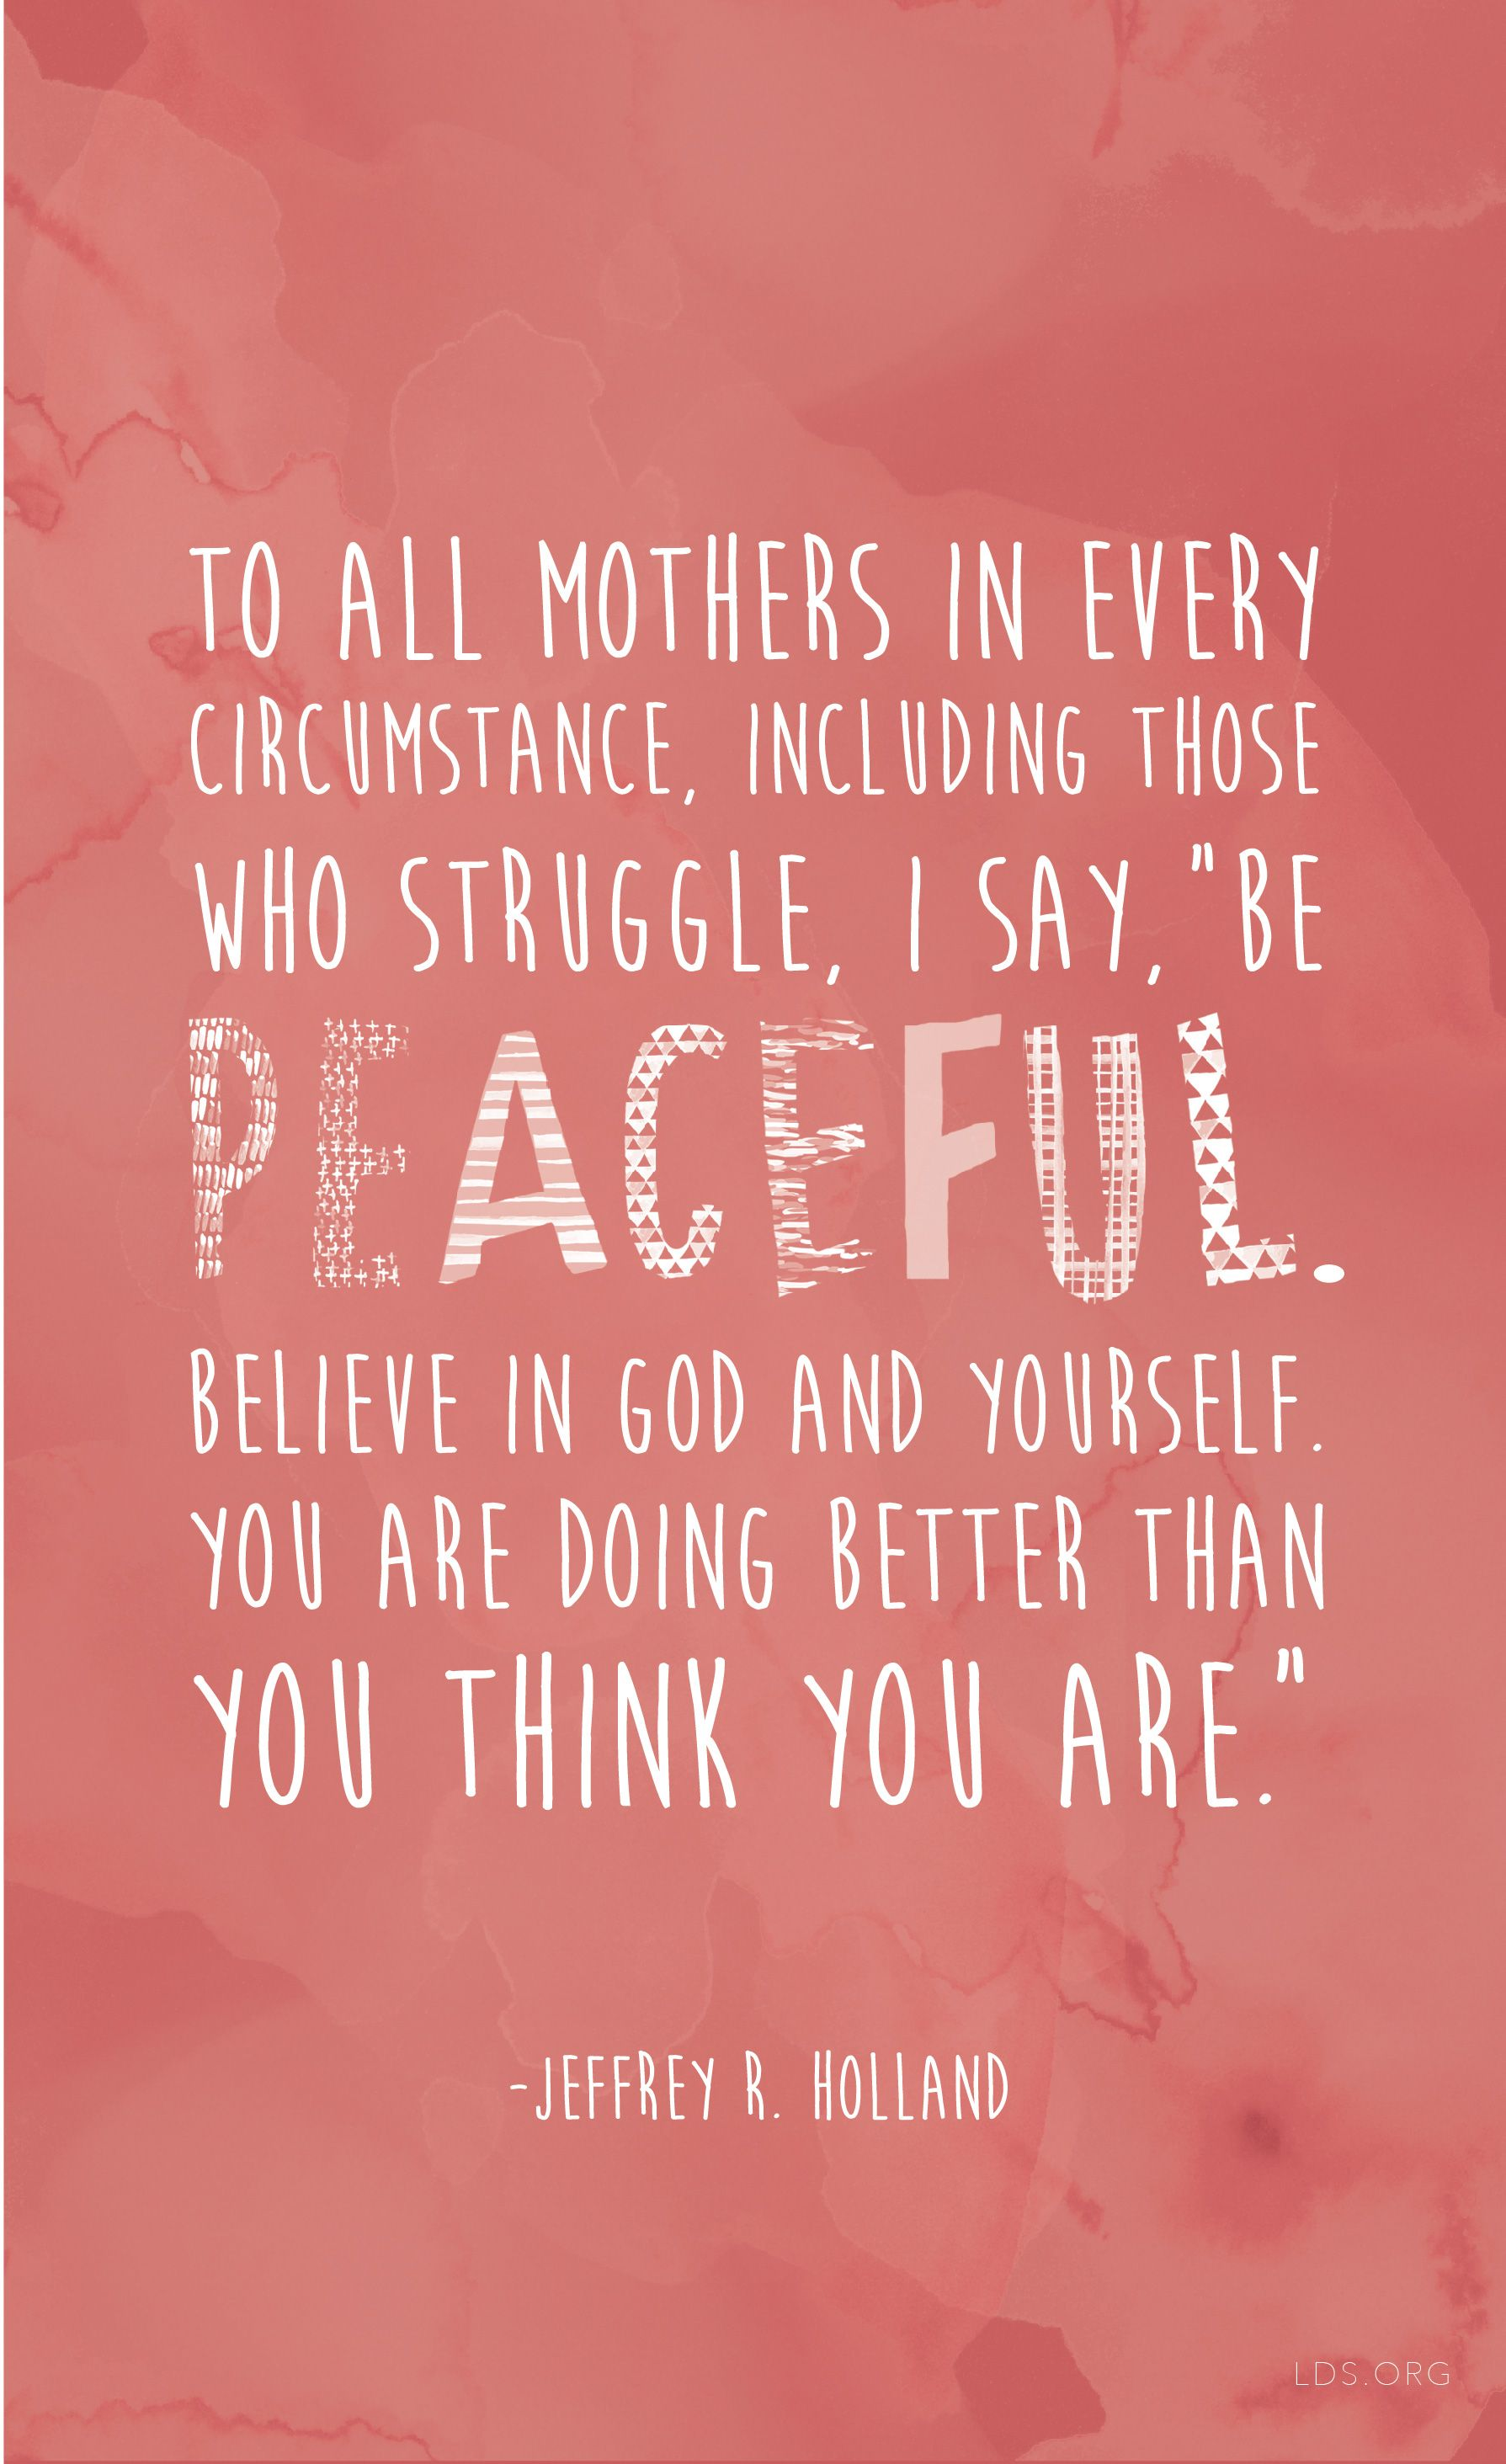 To All Mothers In Every Circumstance Including Those Who Struggle